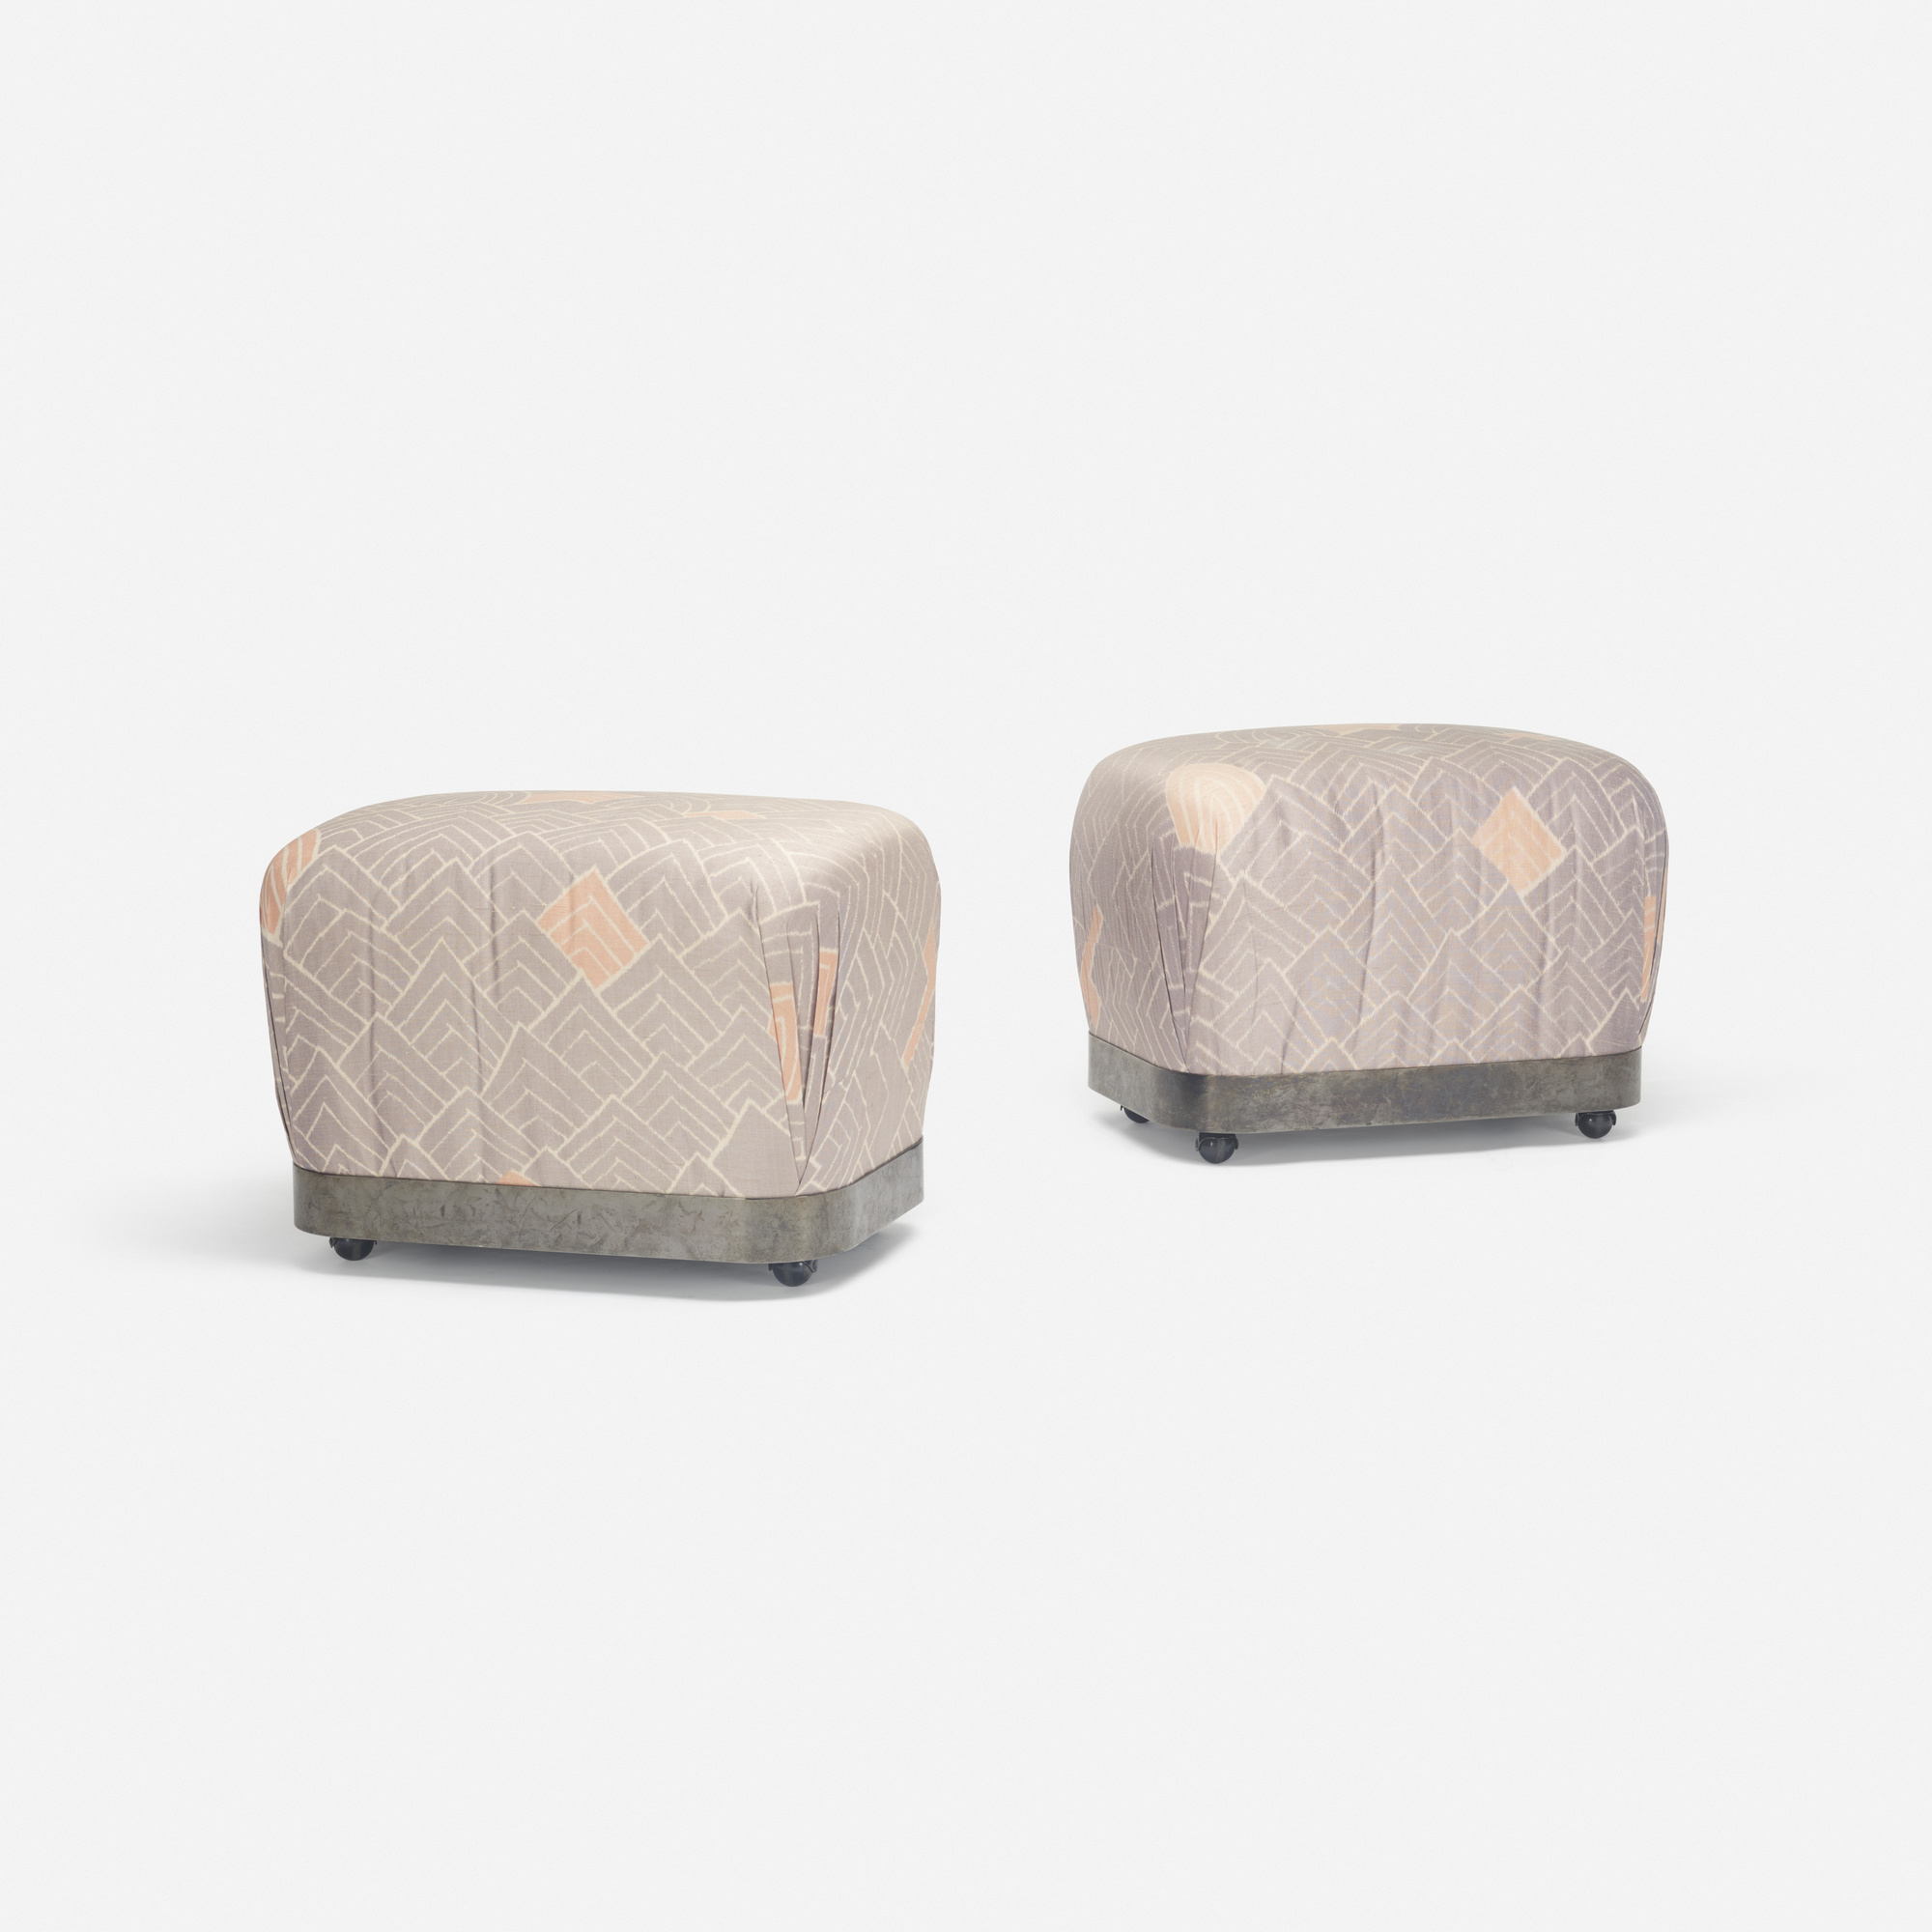 340: Karl Springer / Souffle ottomans, pair (1 of 1)